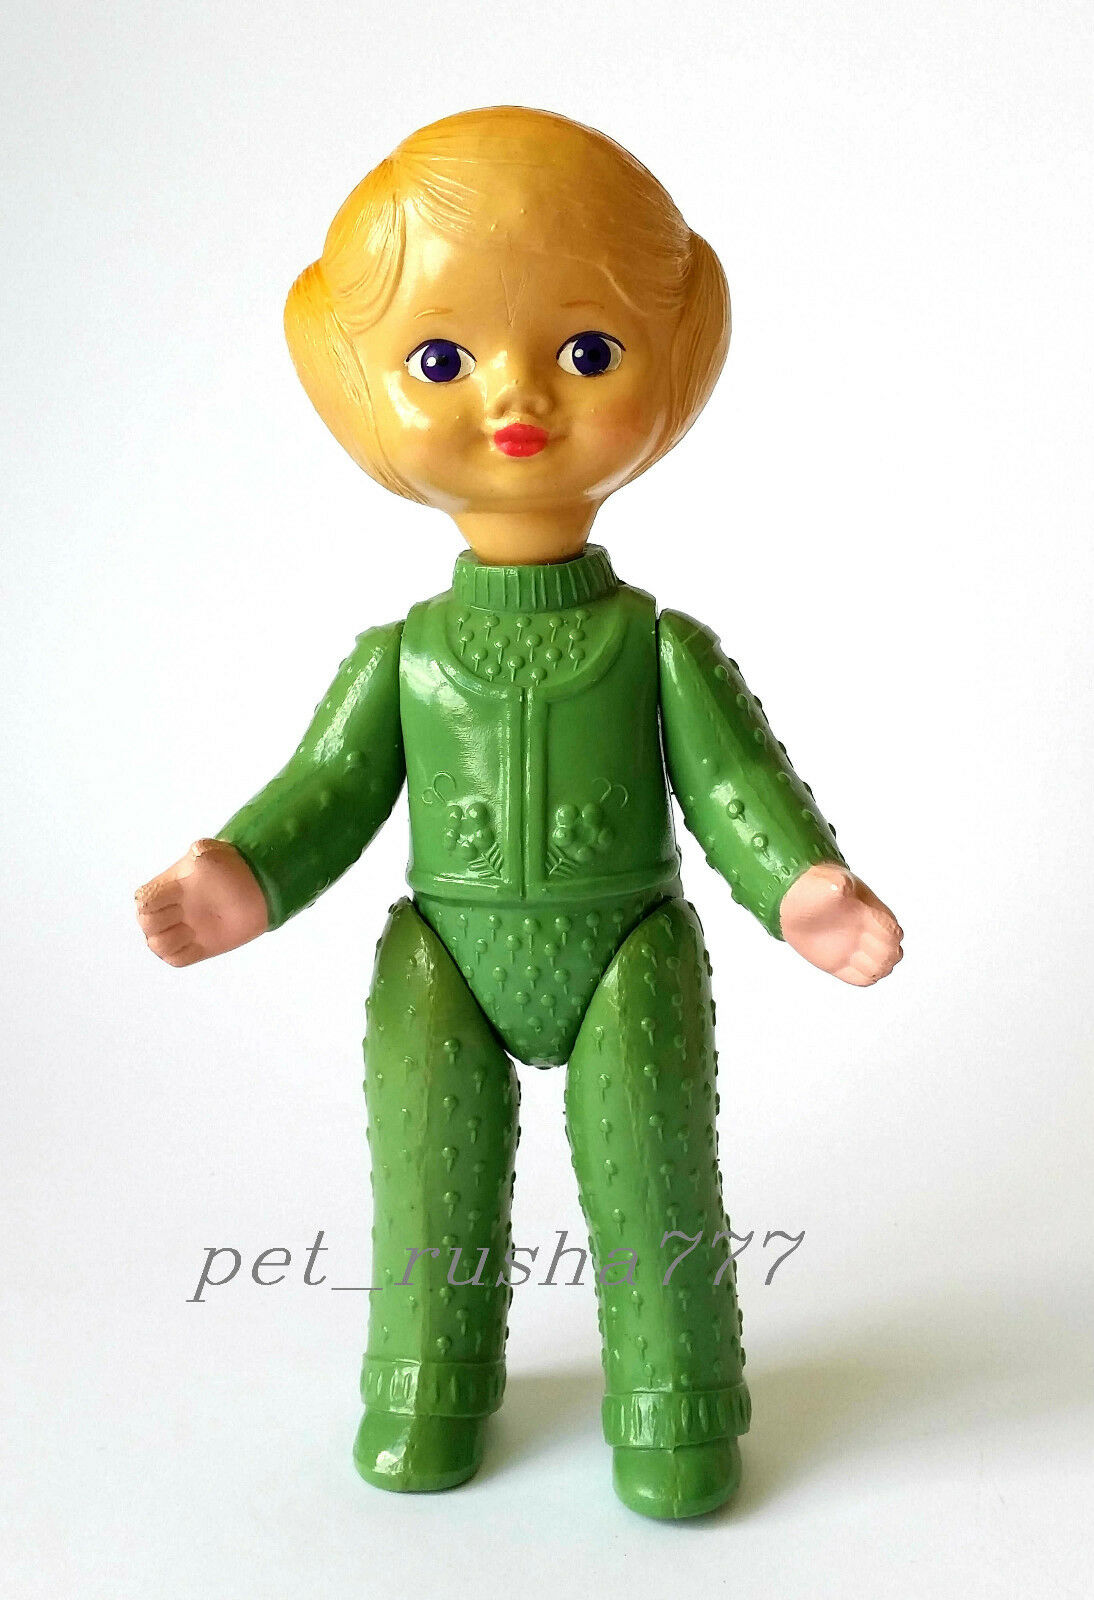 1960s-1970s USSR Russian Soviet  CELLULOID Toy Bellissimo LITTLE GIRL in verde